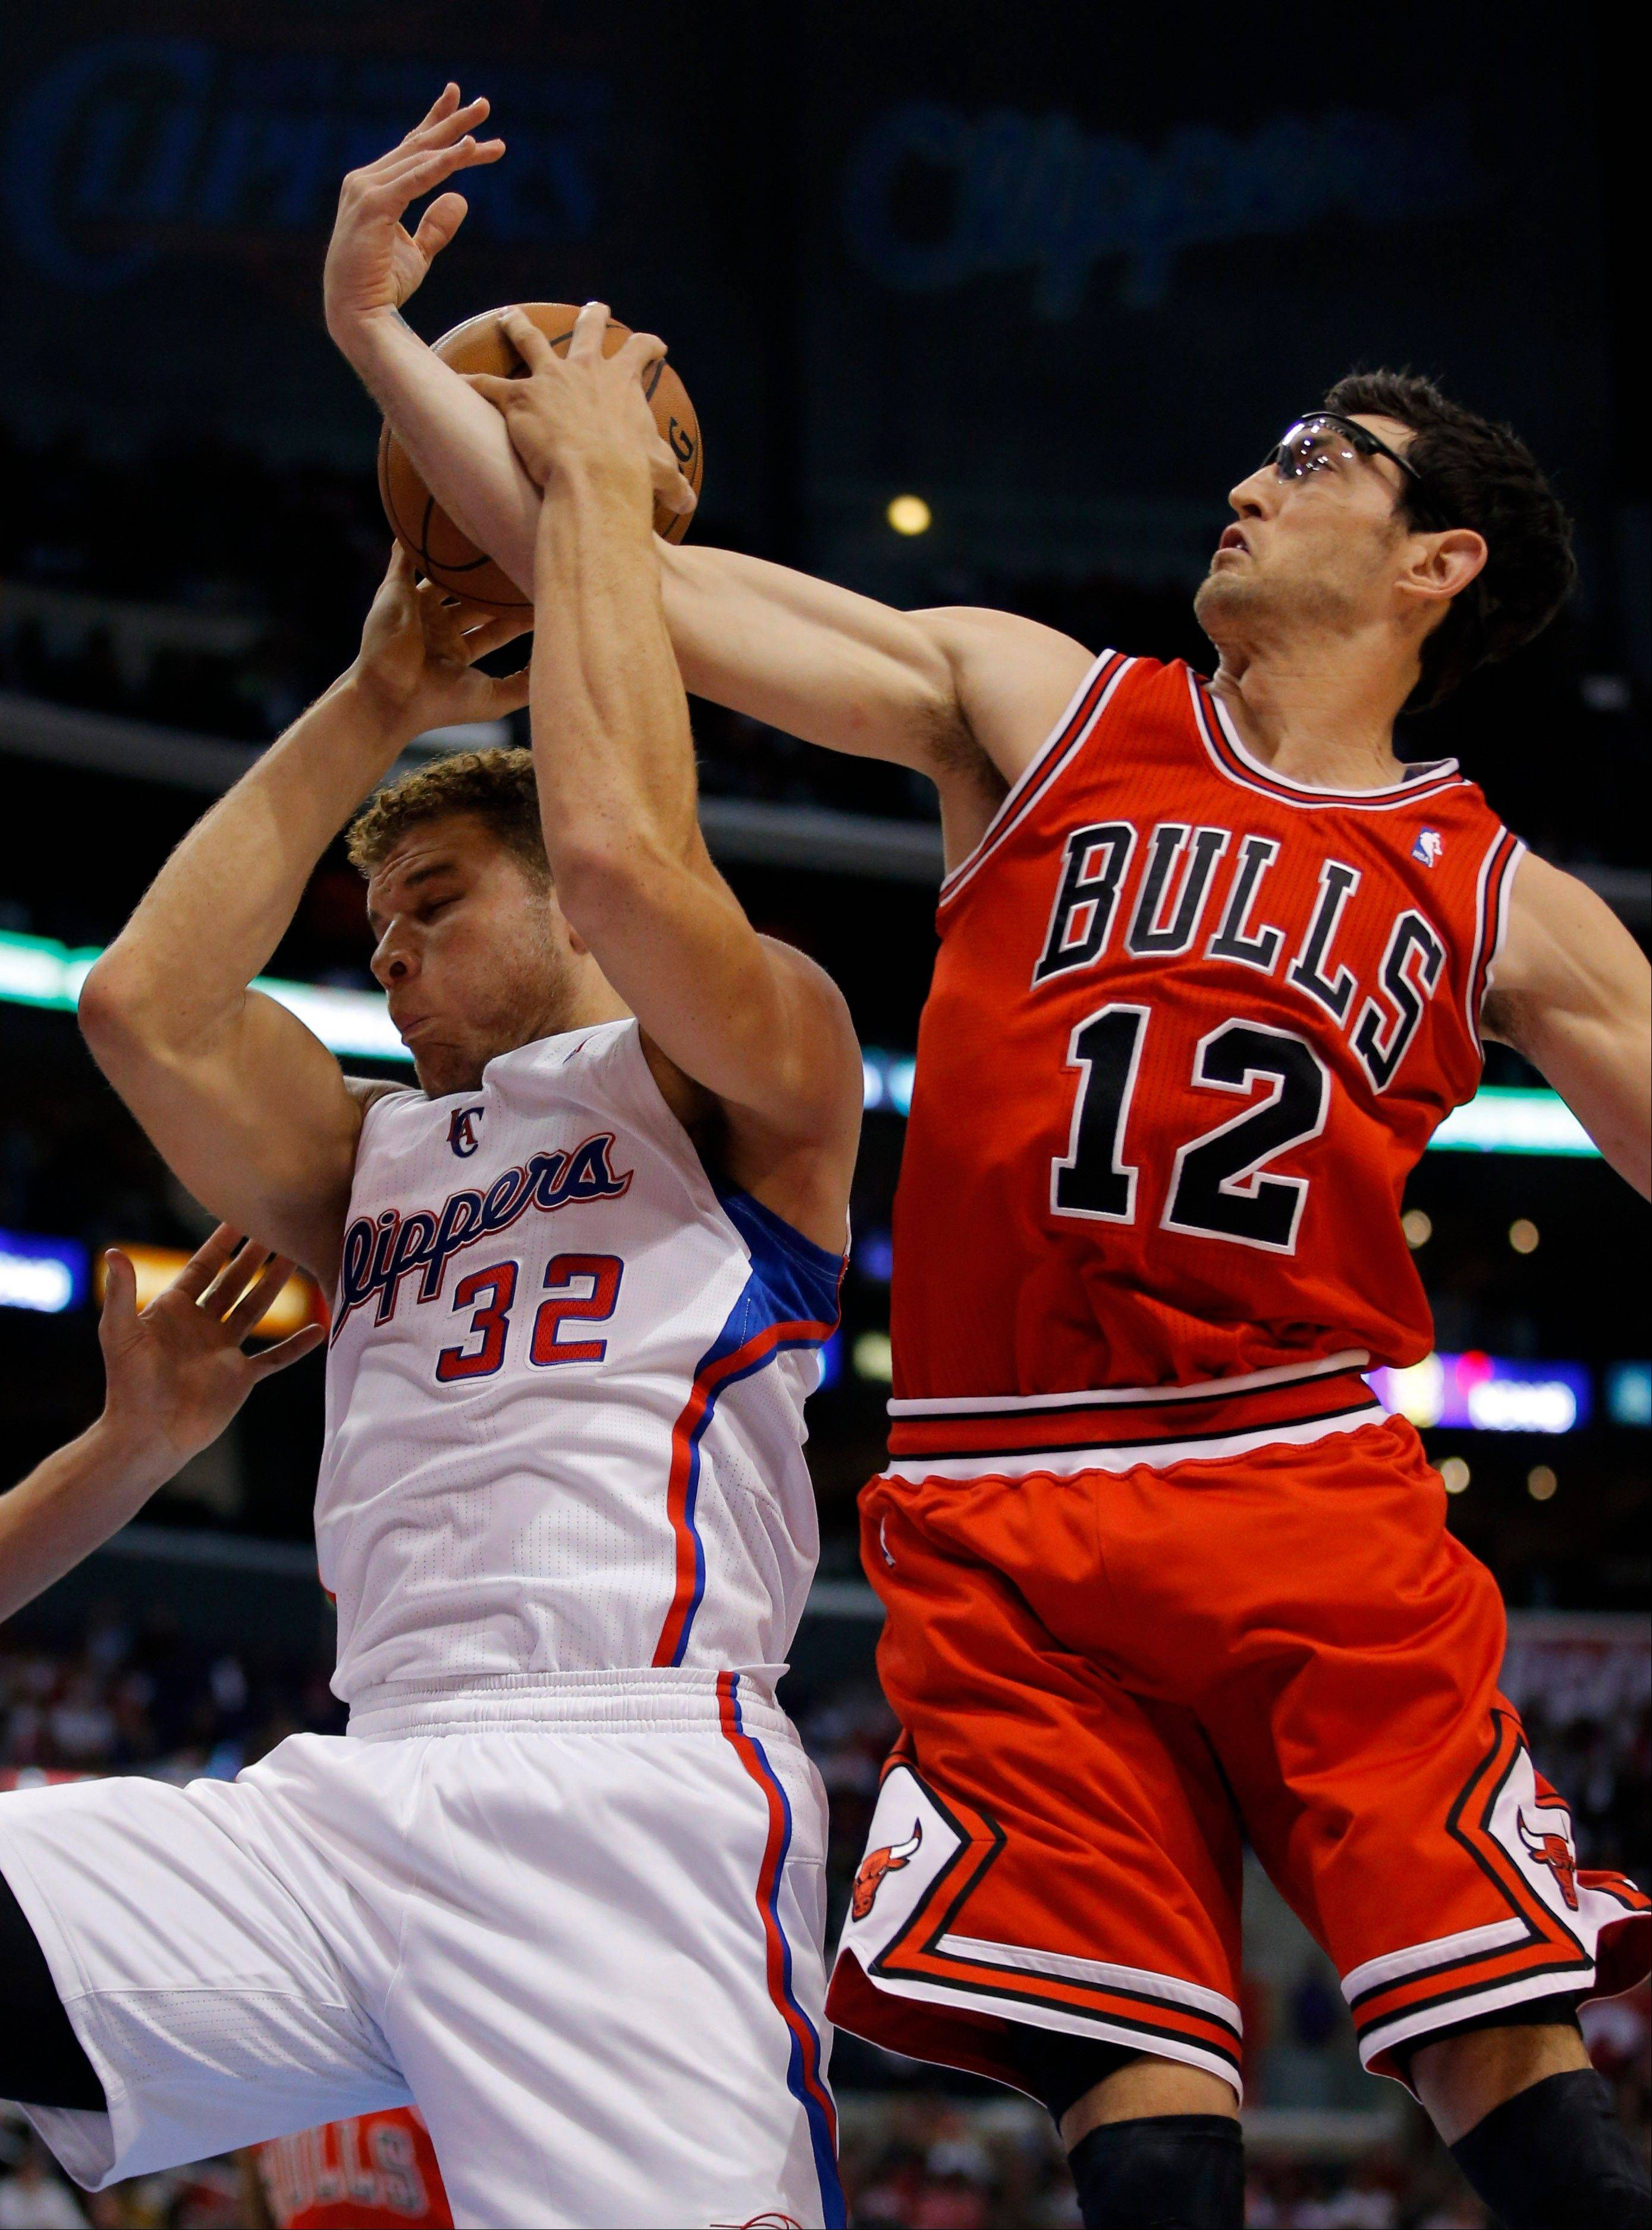 The Clippers� Blake Griffin gets a rebound in front of the Bulls� Kirk Hinrich in a game last week.